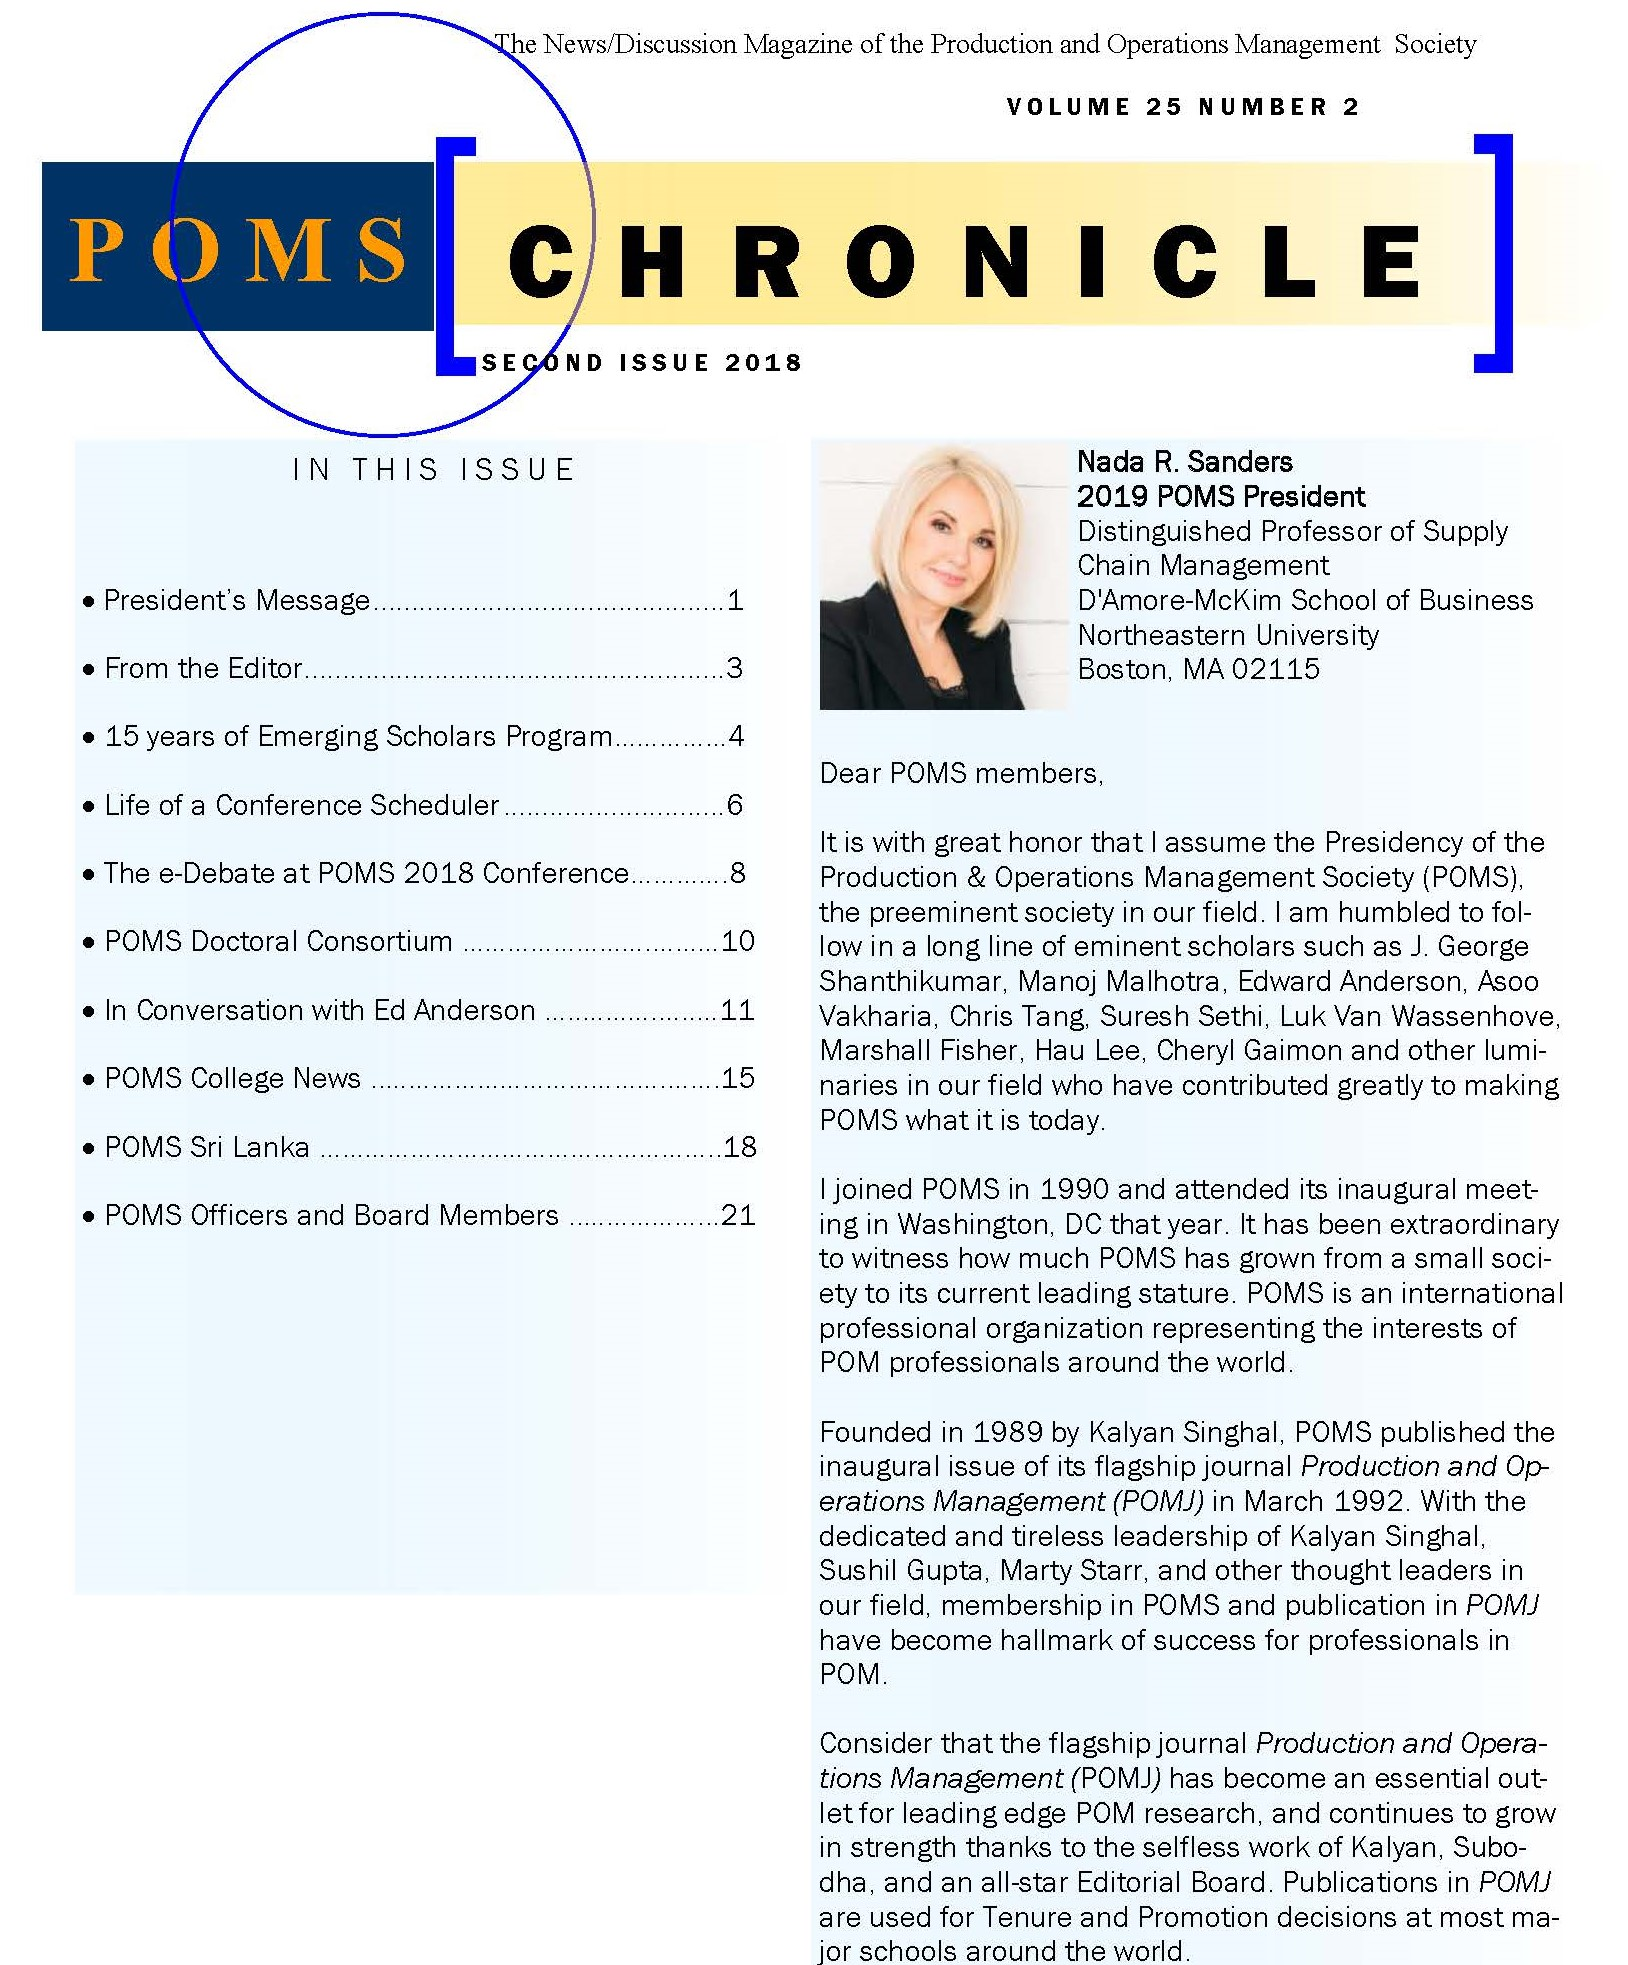 POMS Chronicle Vol 25 No 2-cover.jpg